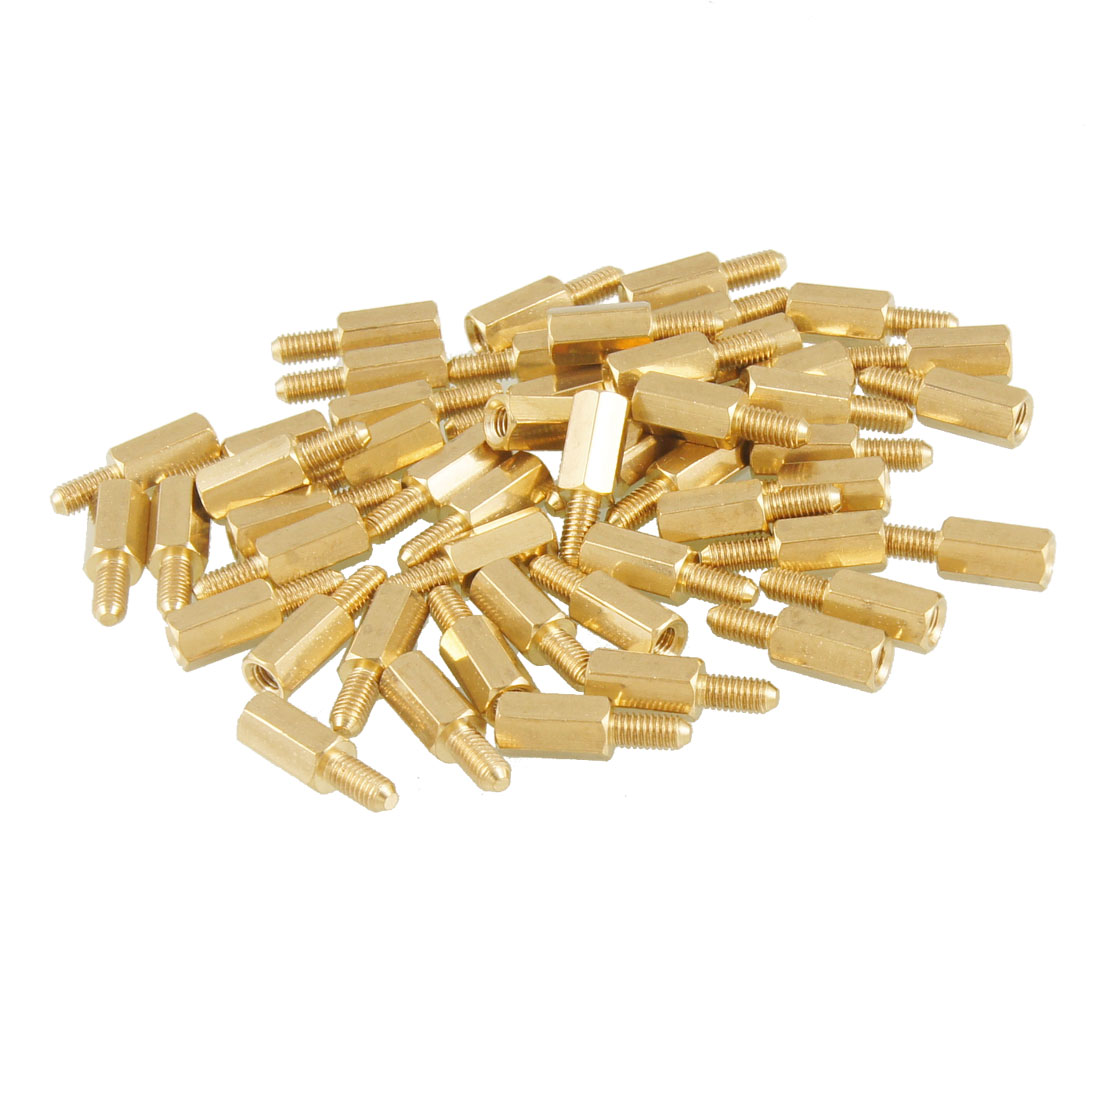 50 Pcs Brass Screw Thread PCB Stand-off Spacer M3 Male x M3 Female 6mm